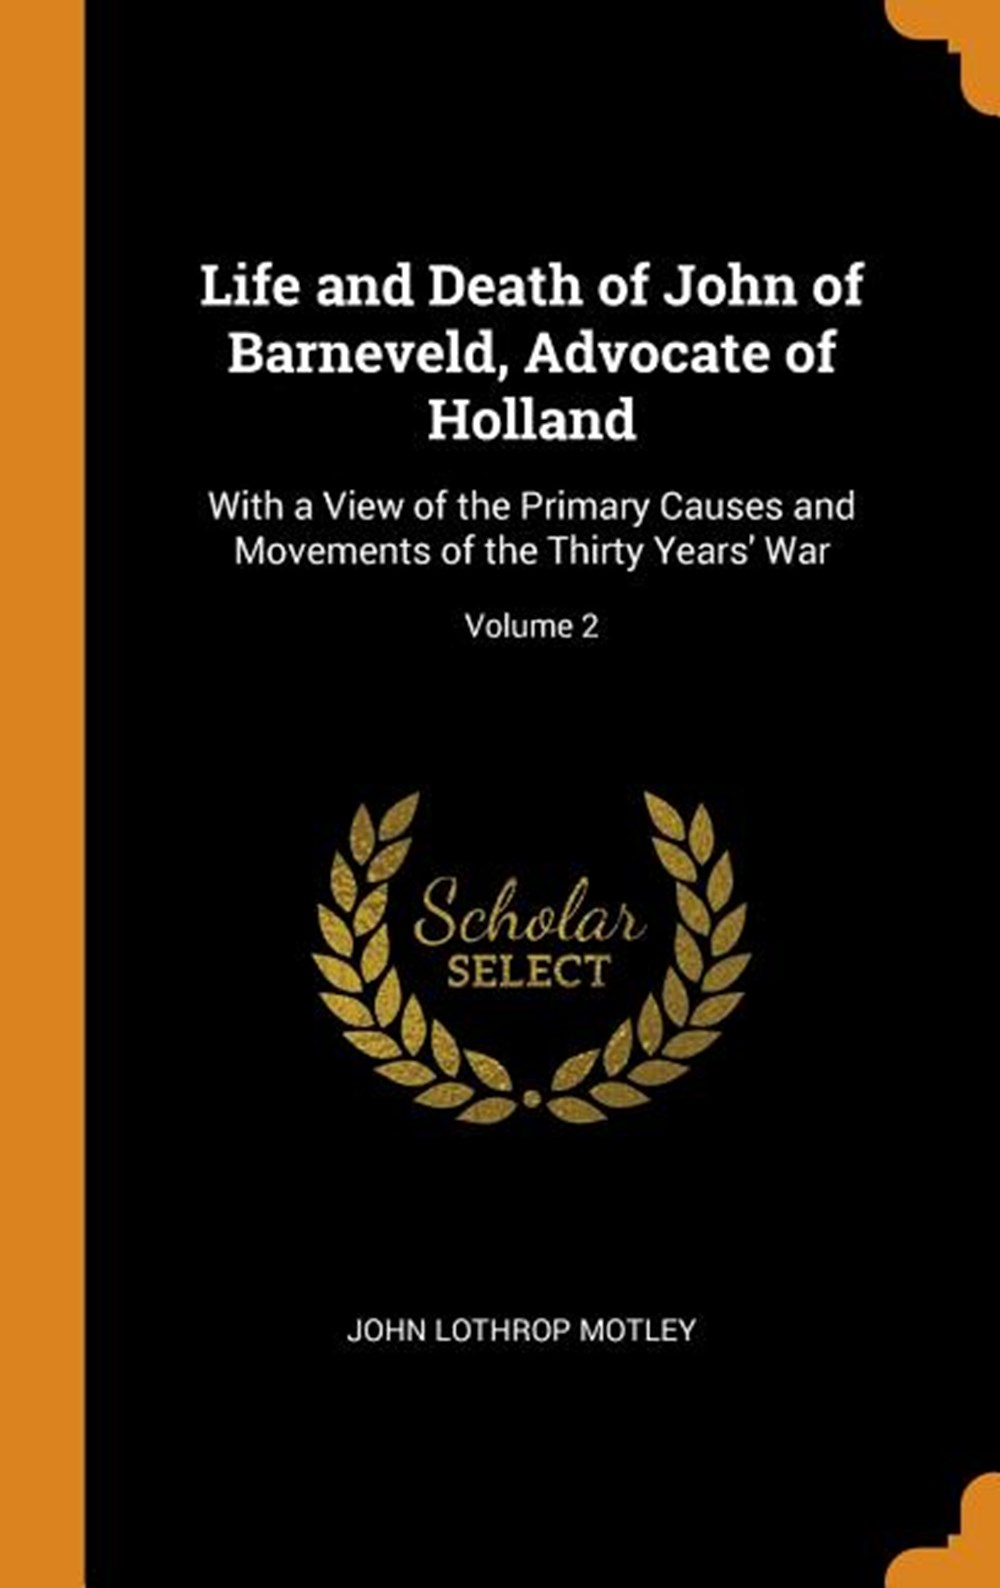 Life and Death of John of Barneveld, Advocate of Holland With a View of the Primary Causes and Movem